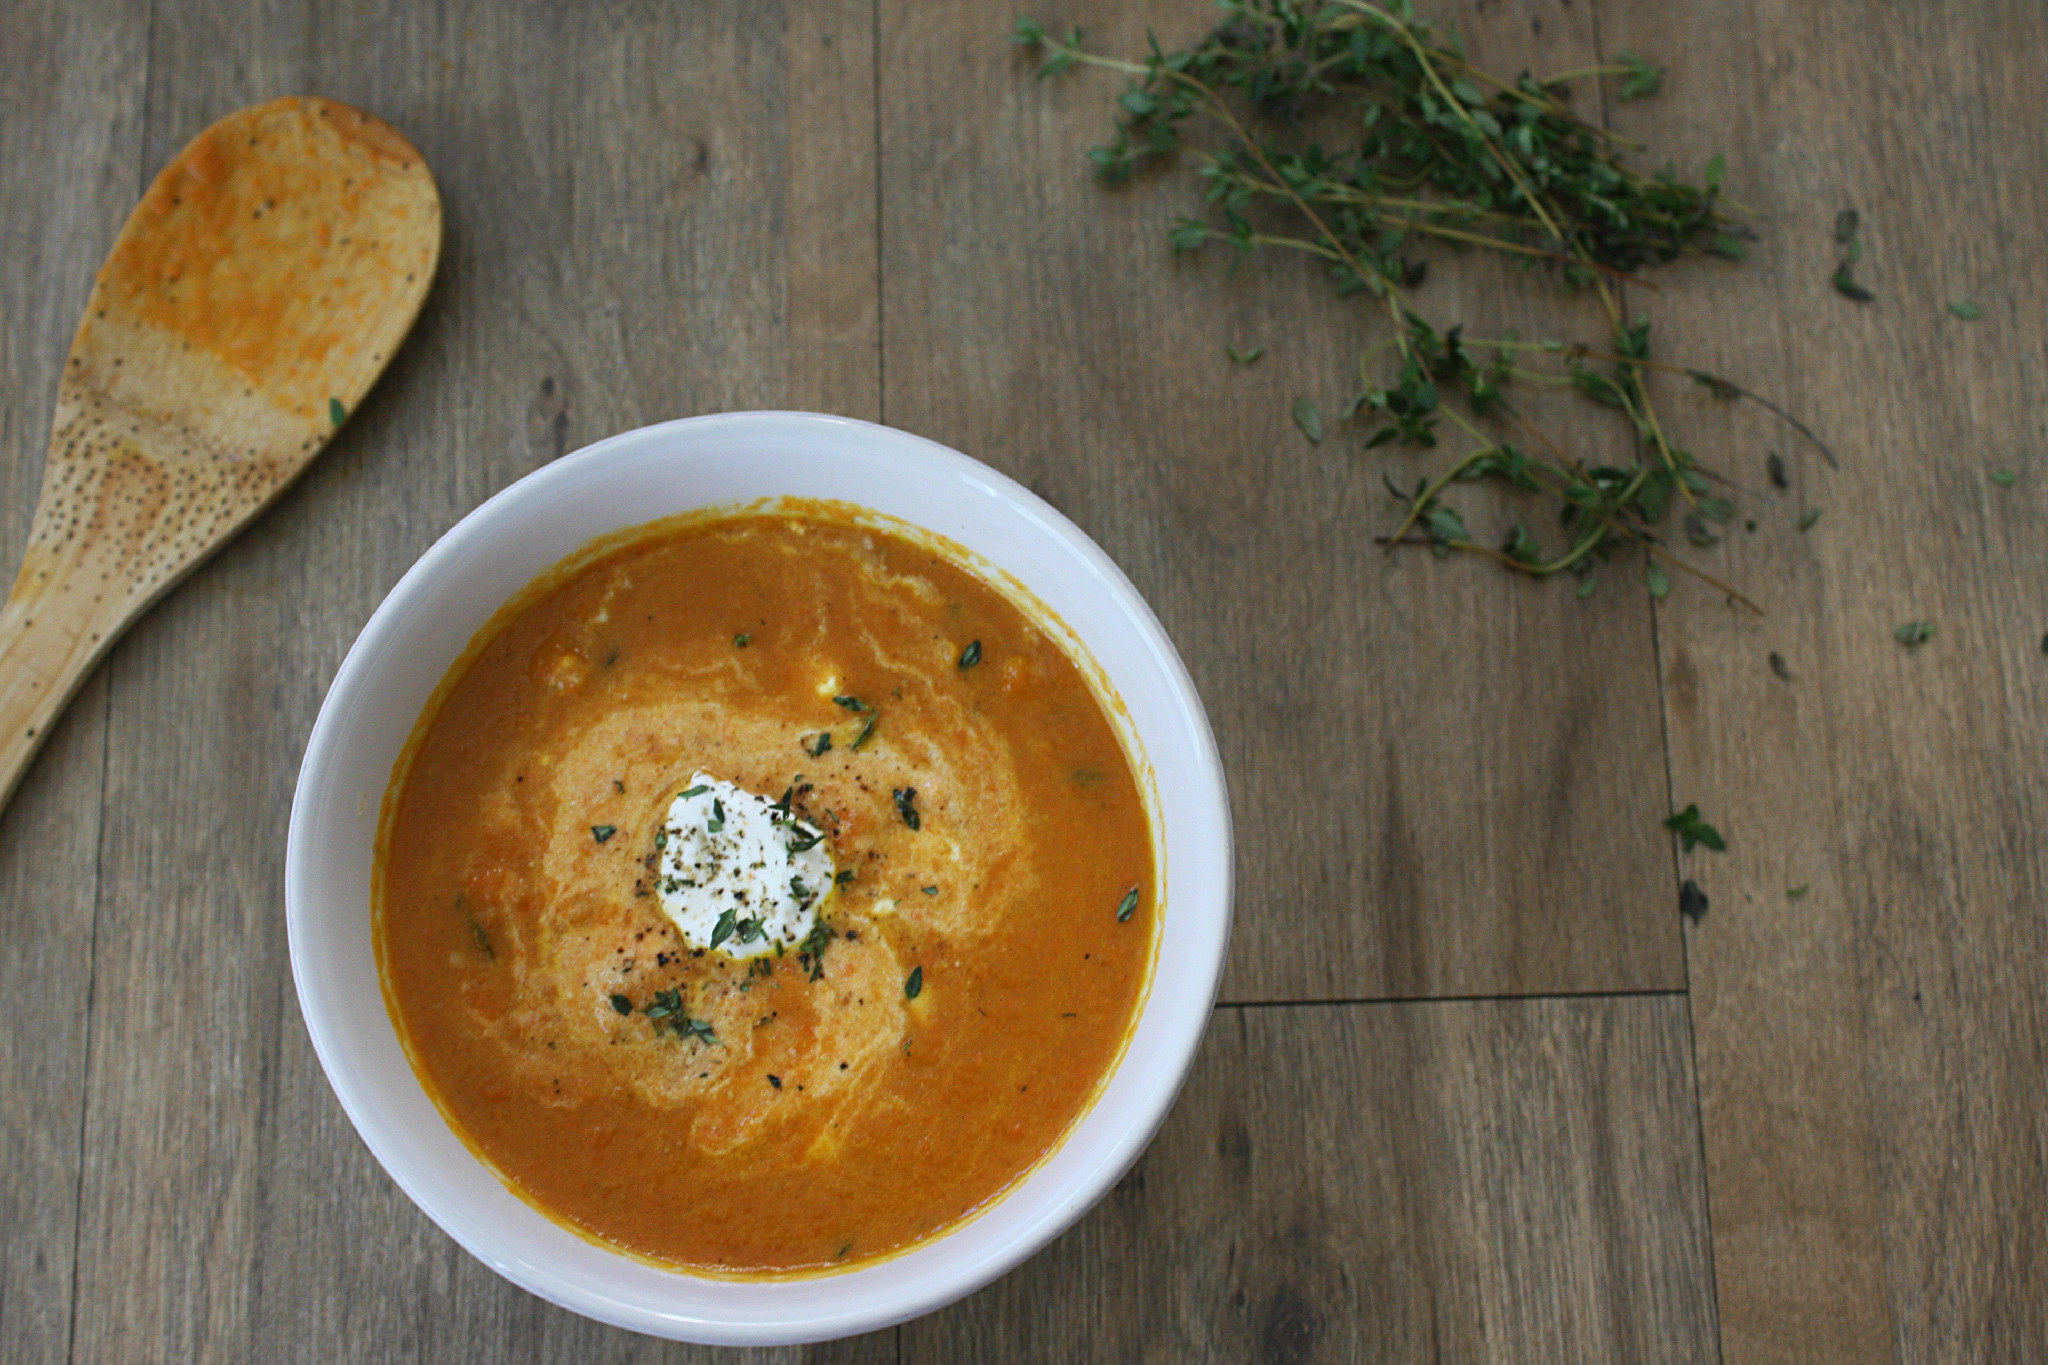 Roasted Carrot Soup with Ginger and Thyme